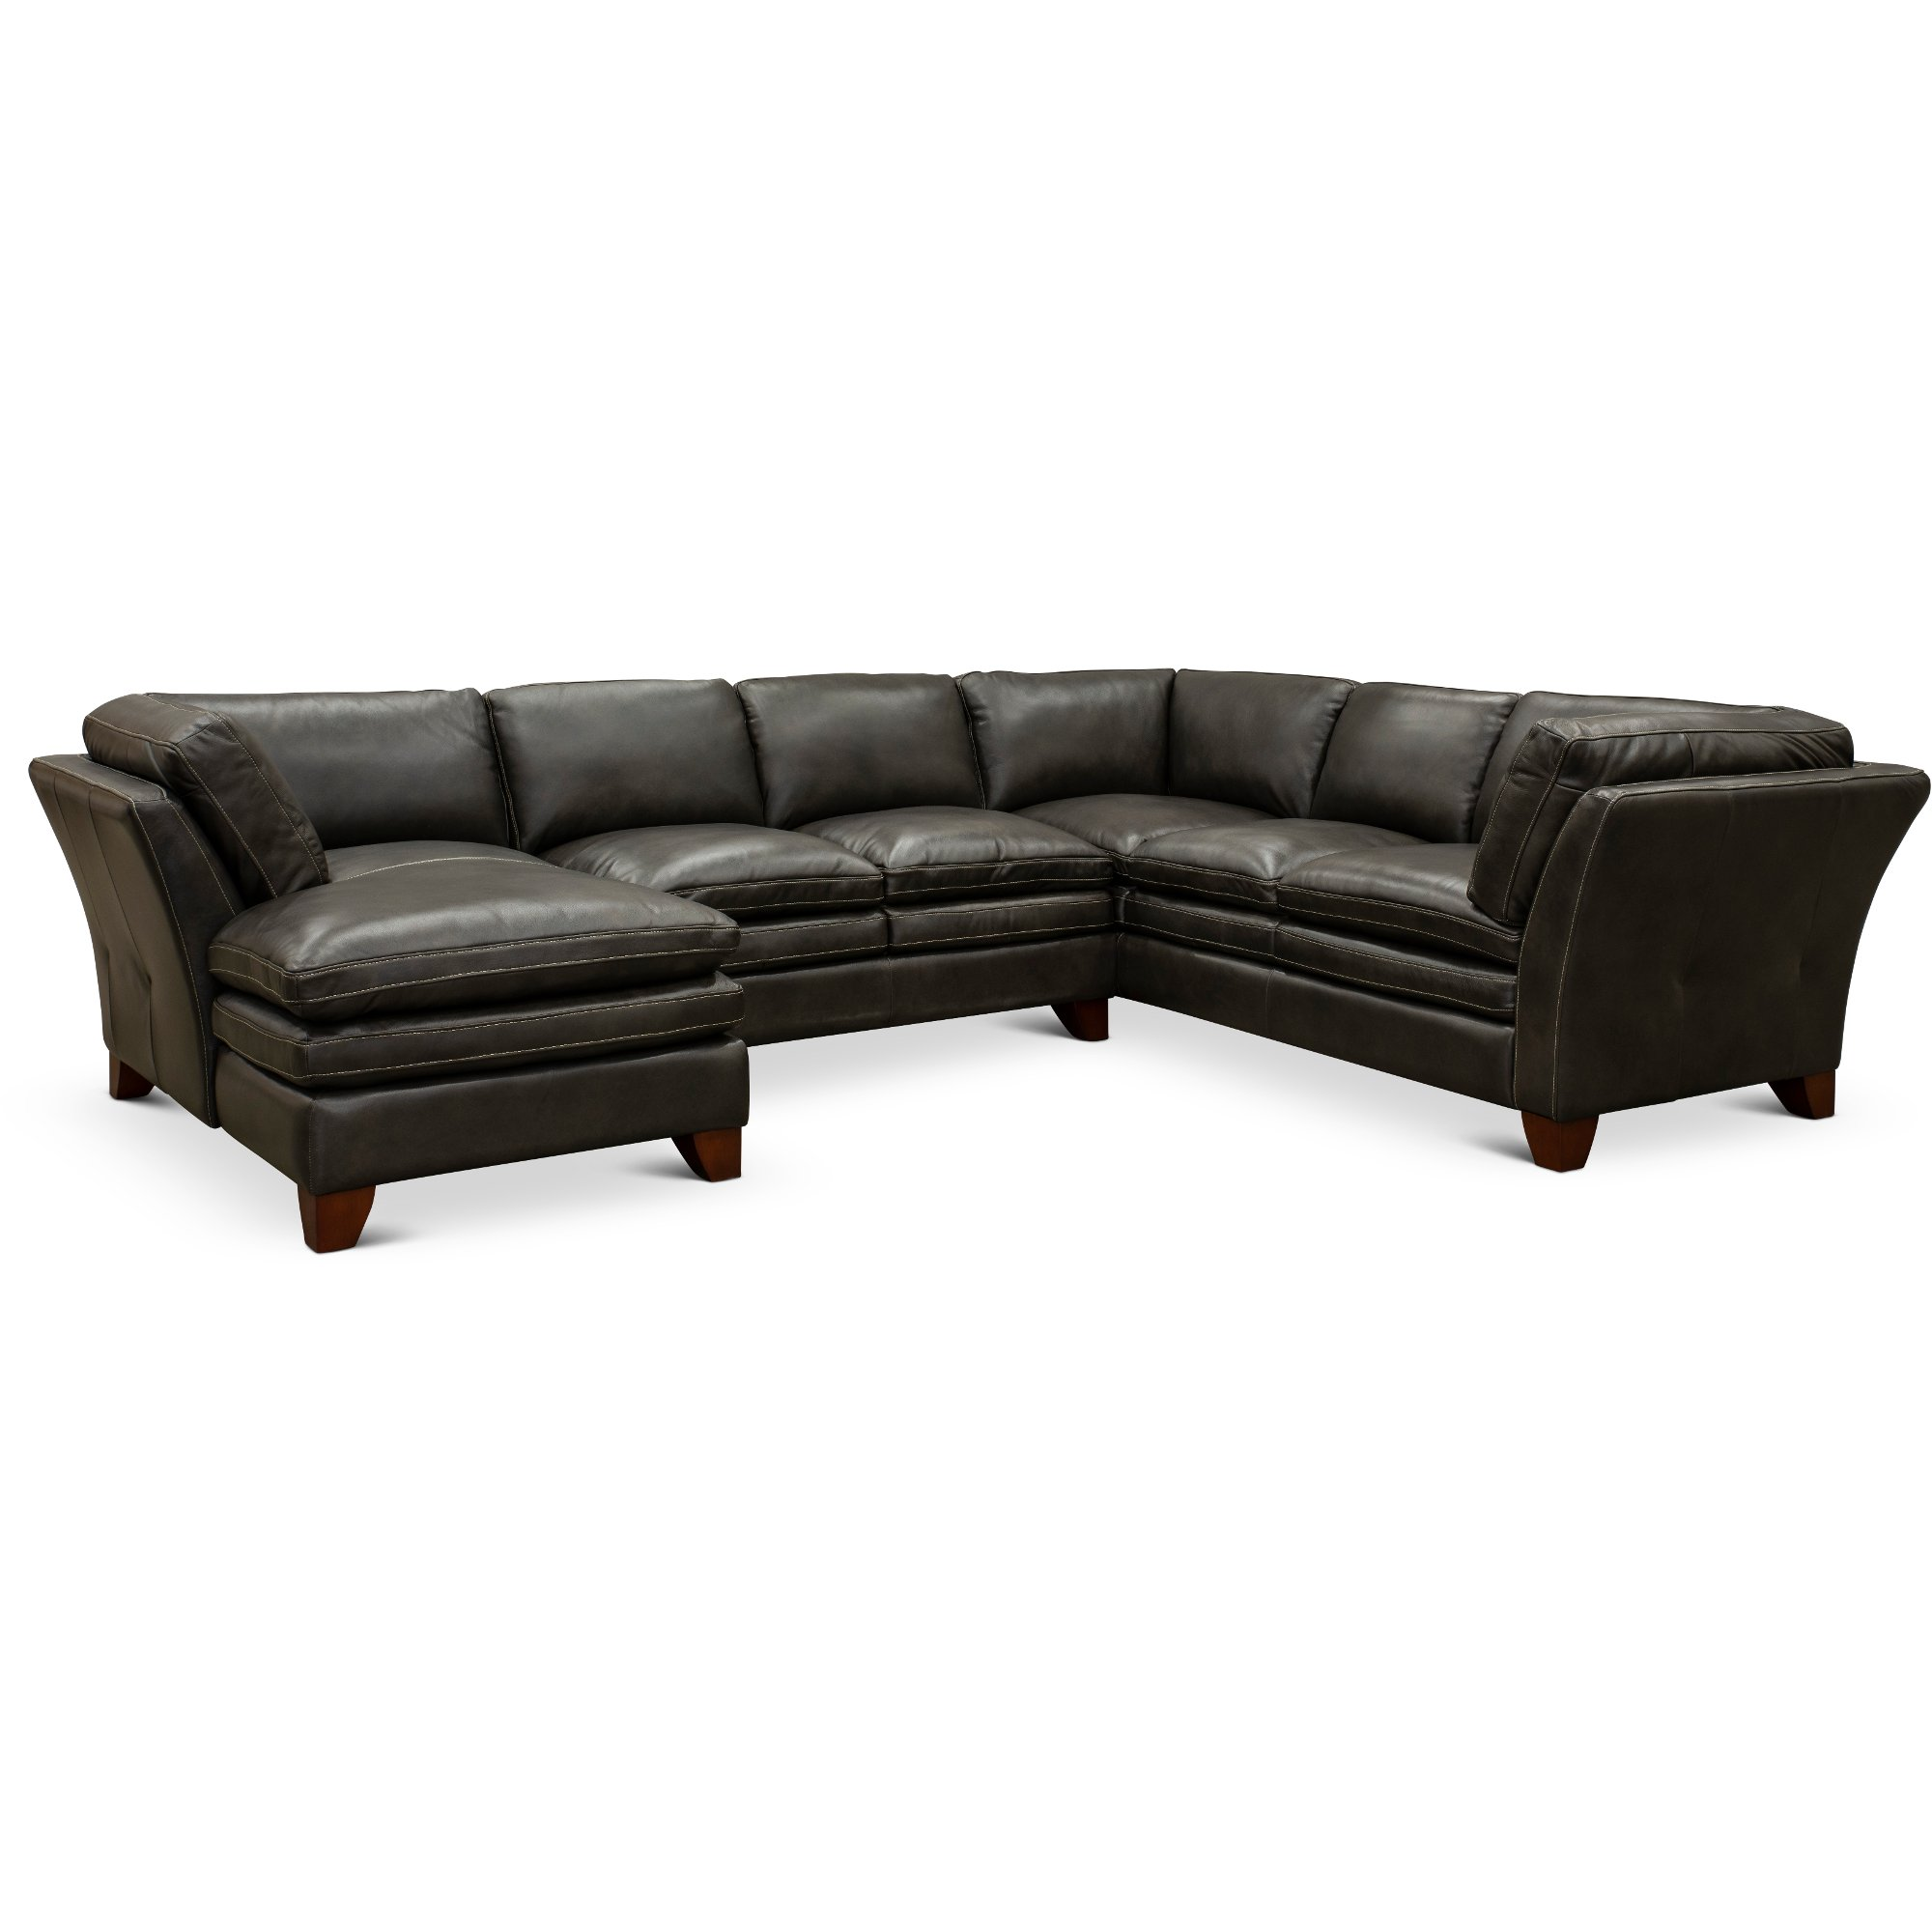 Charcoal Leather 3 Piece Sectional Sofa with LAF Chaise - Sierra